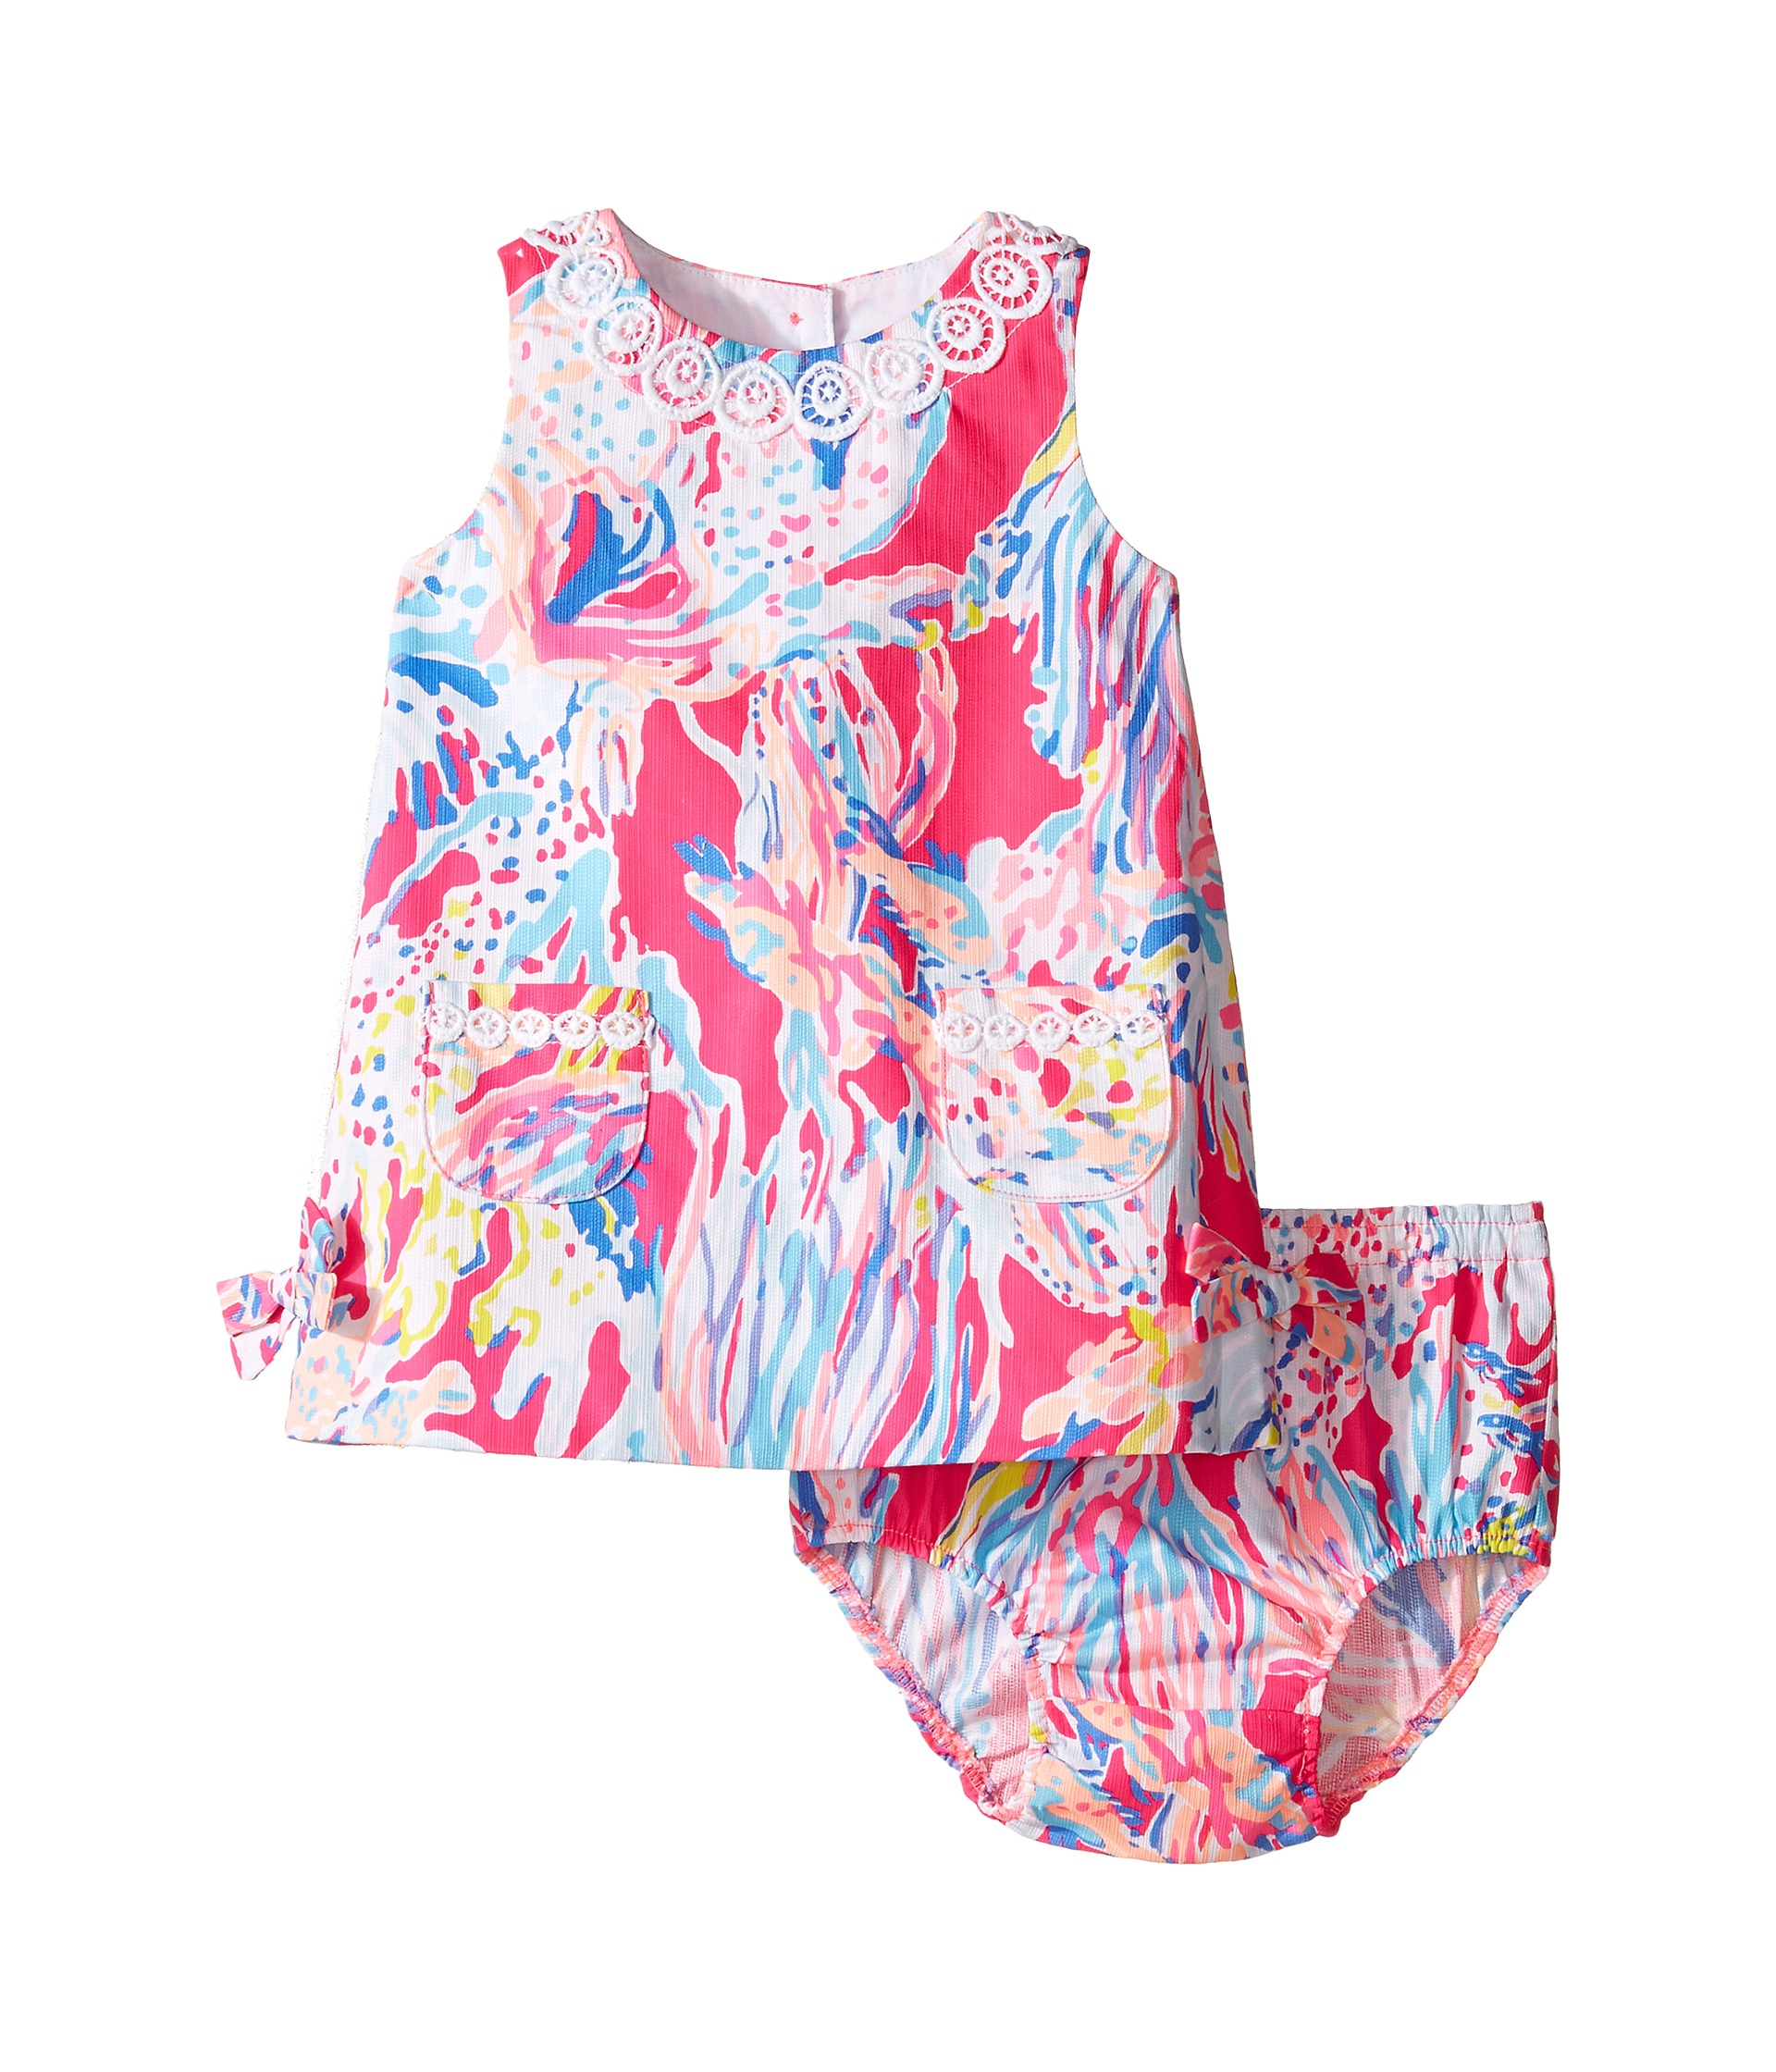 Lilly Pulitzer Kids Lilly Shift Infant at Zappos